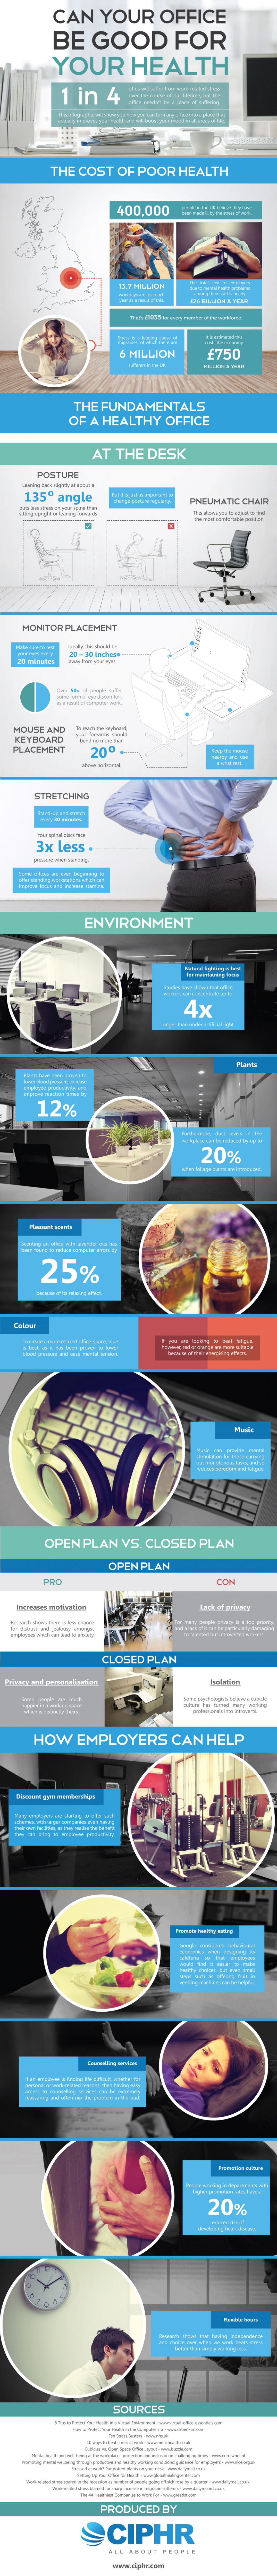 Can Your Office Be Good For Your Health Infographic